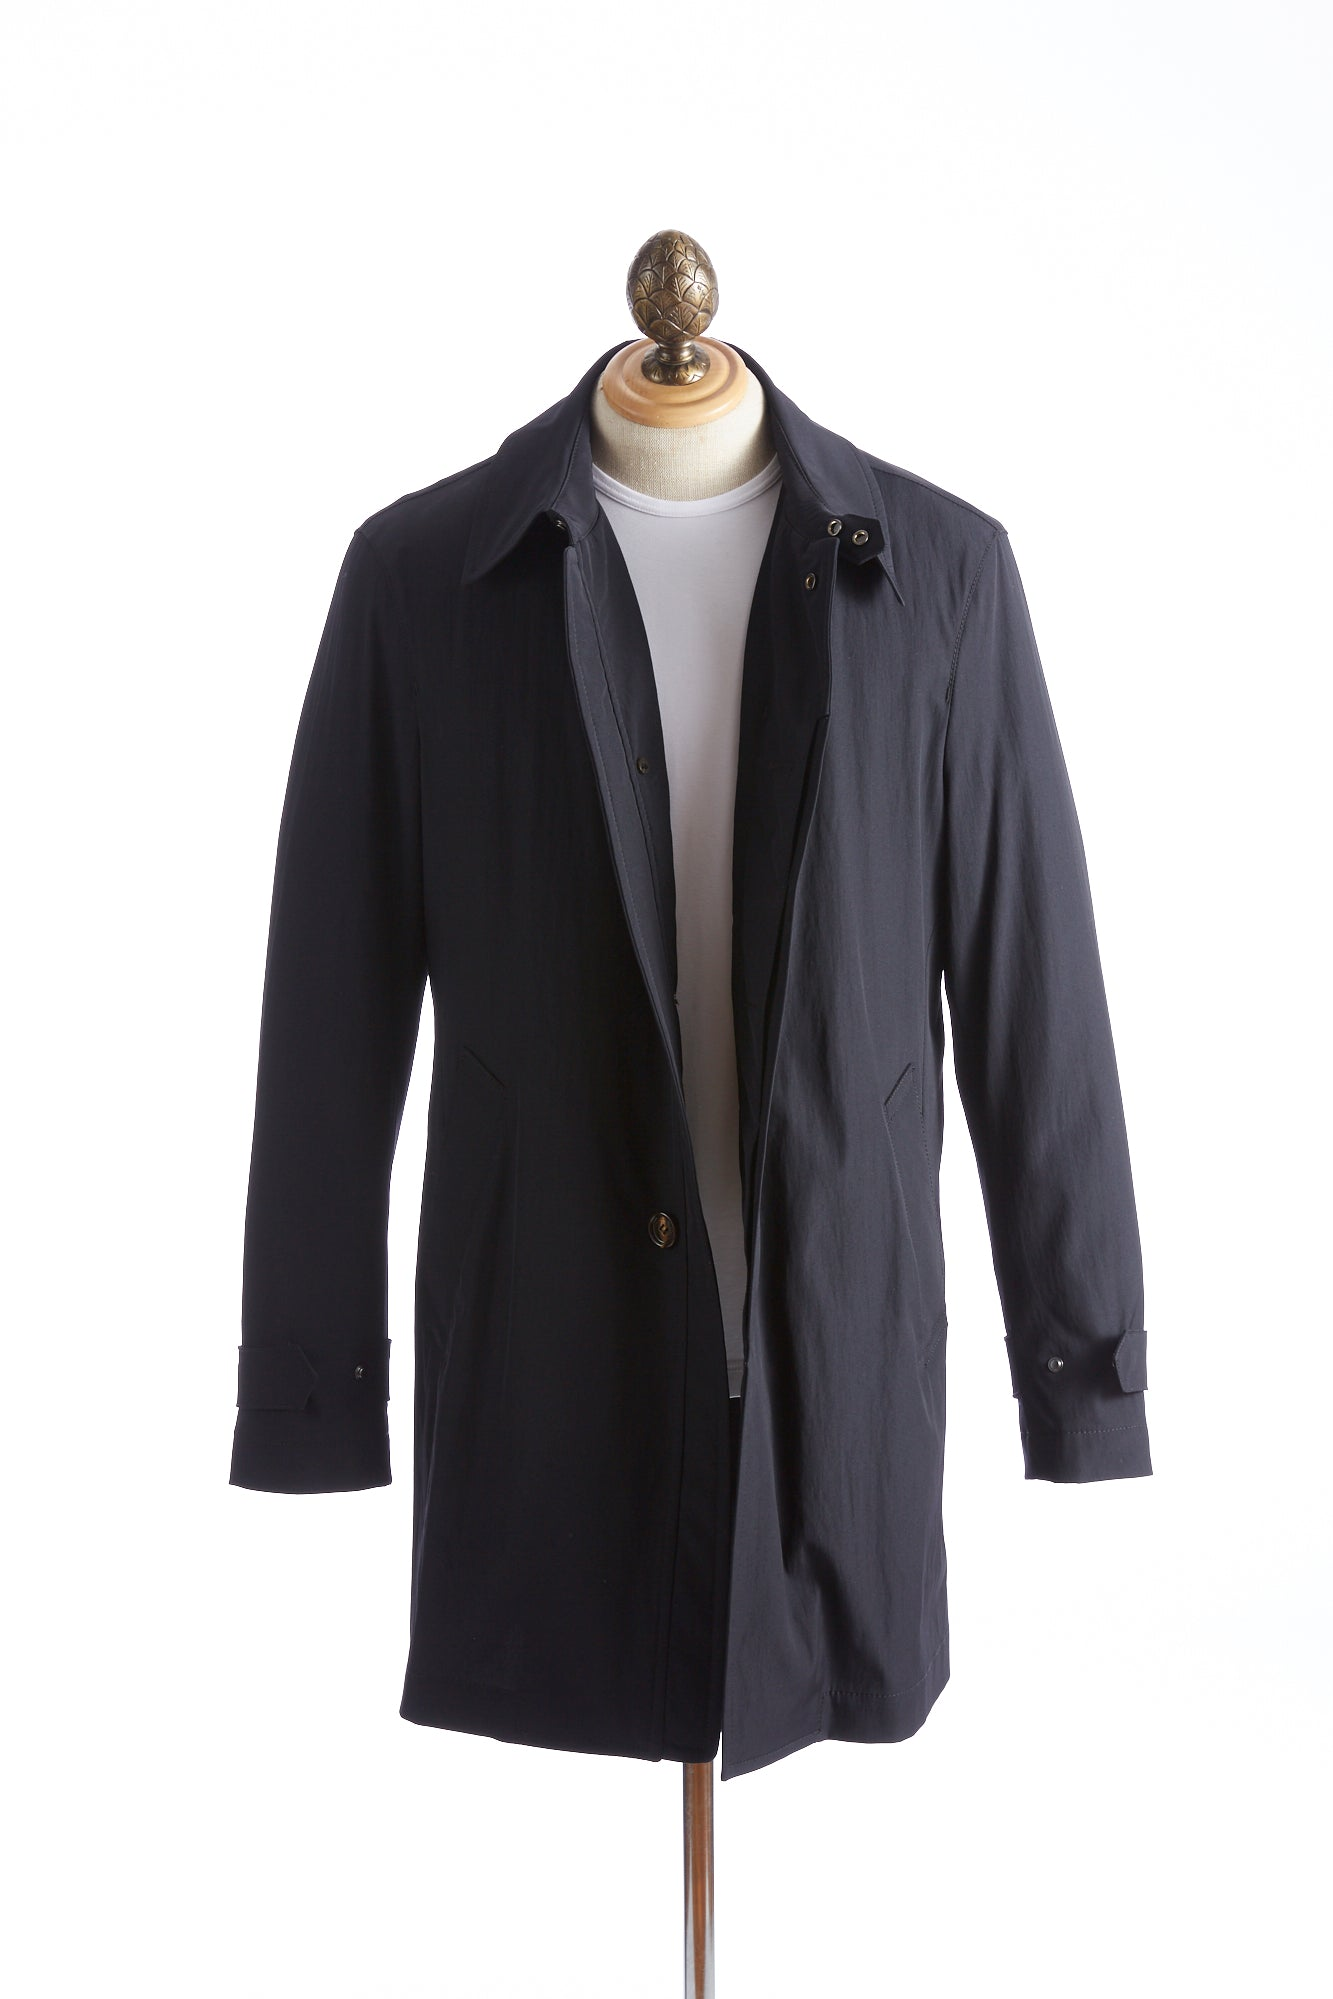 Baldessarini Thermore Quilted Navy Trench Coat - Outerwear - Baldessarini - LALONDE's